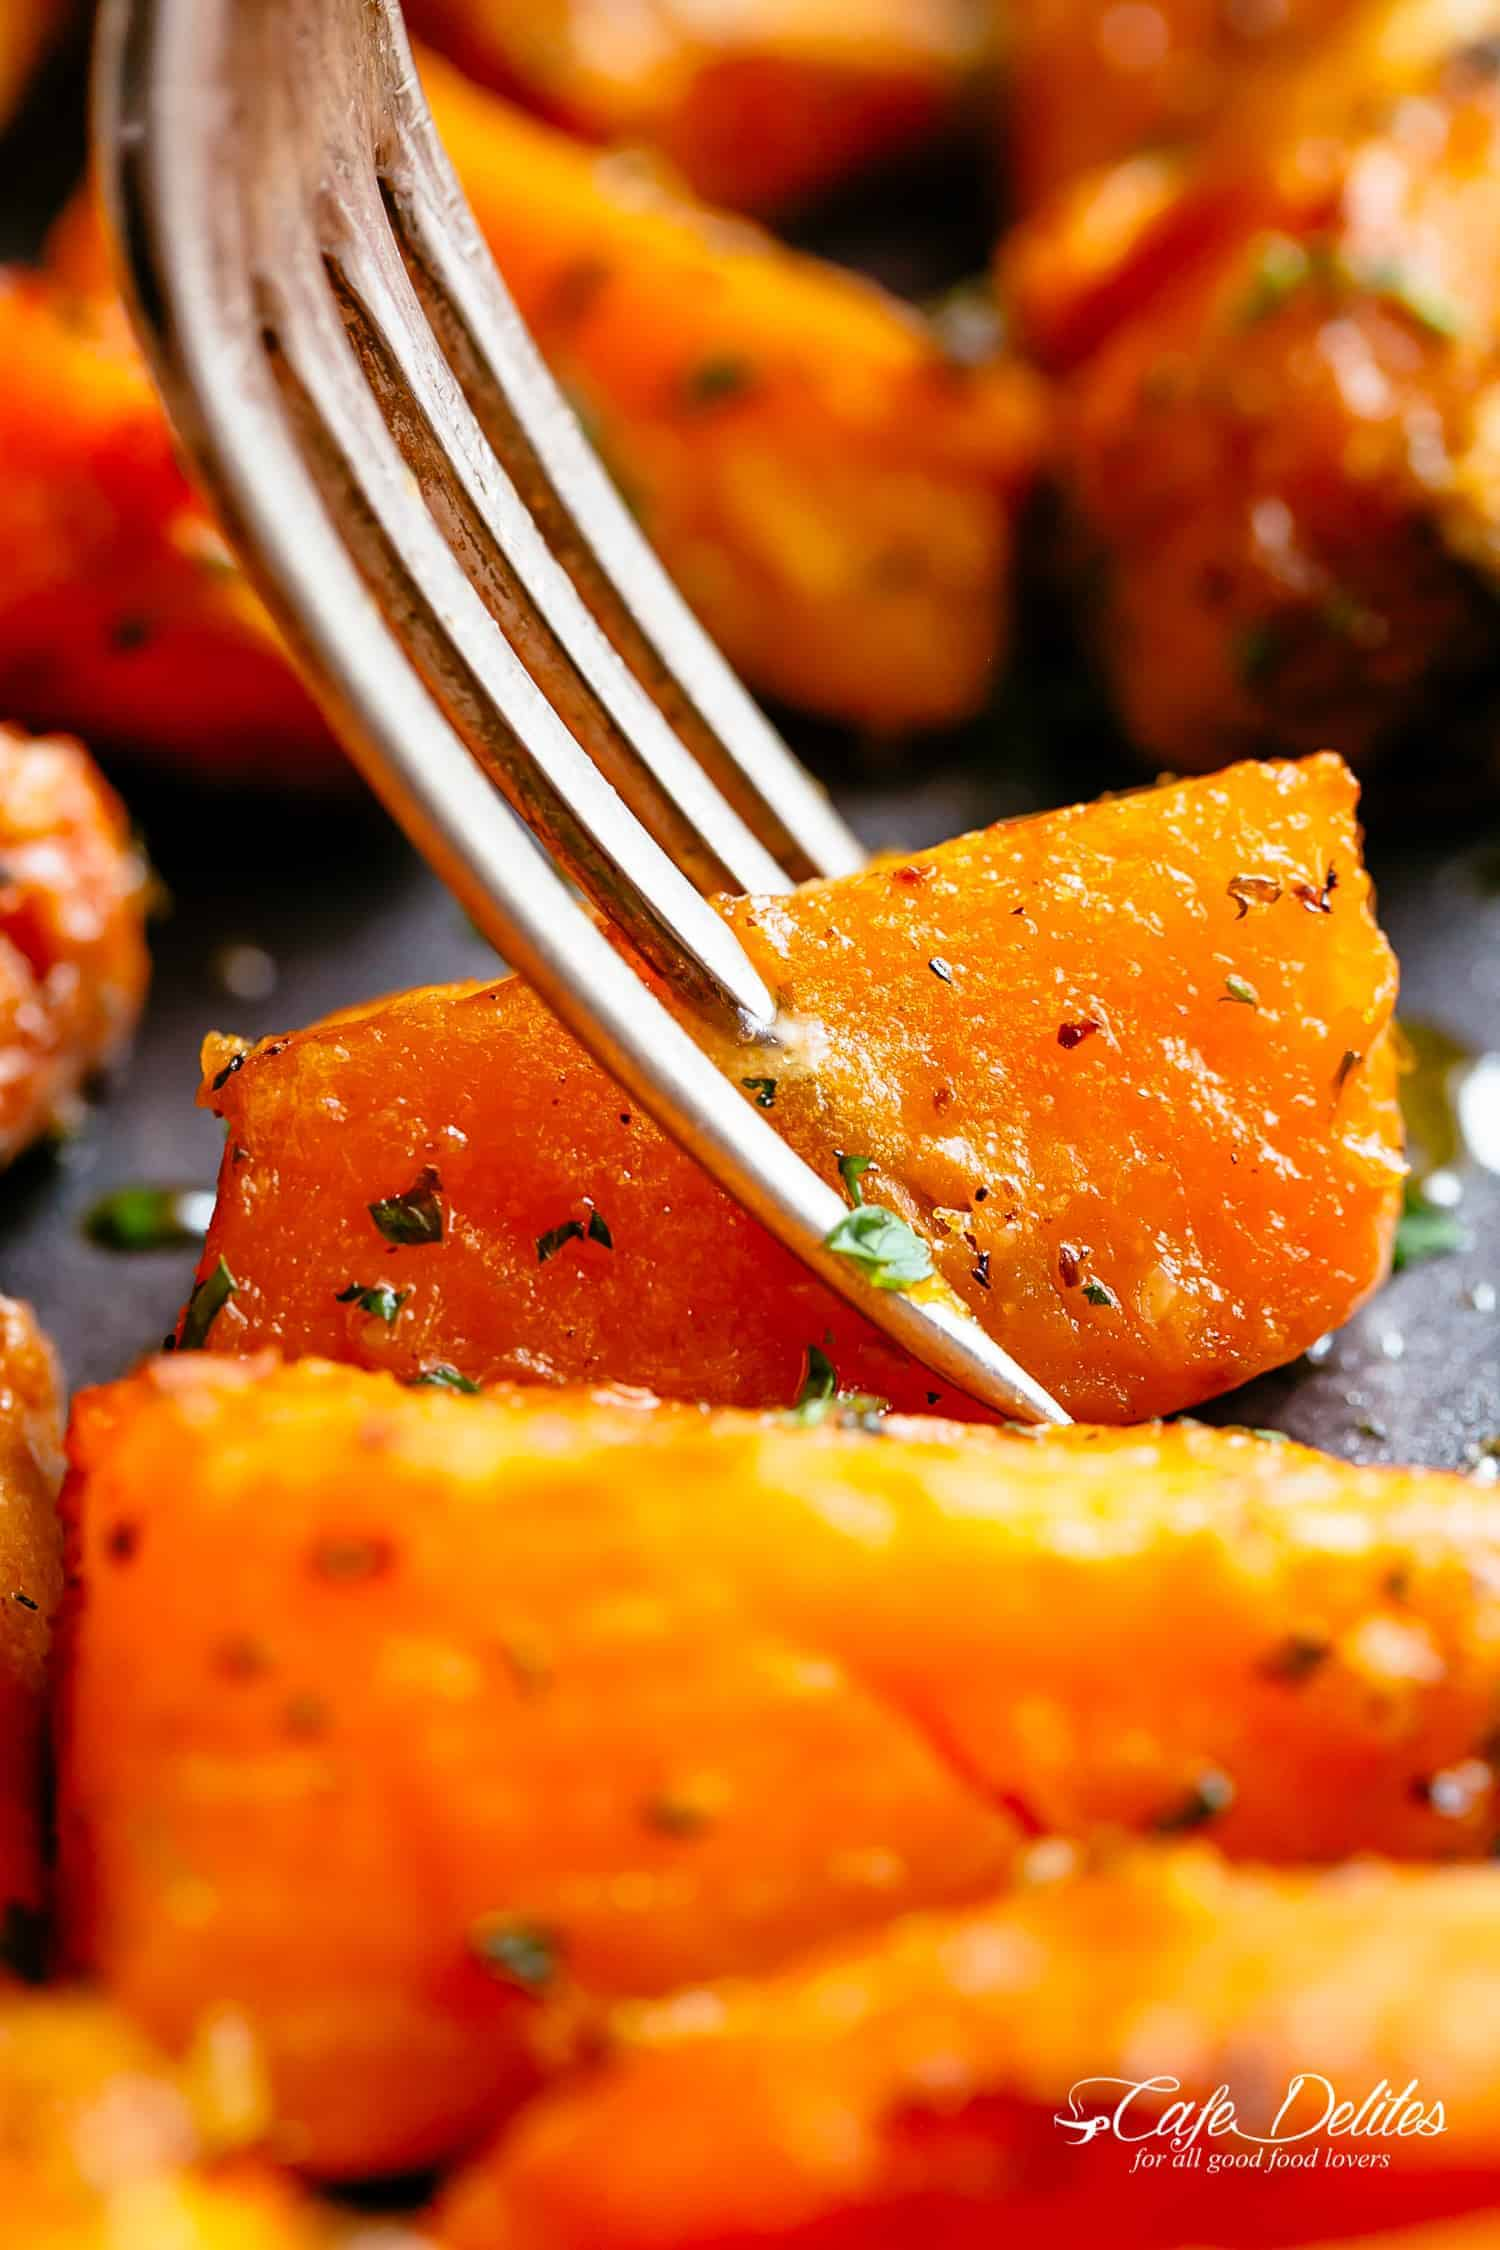 Easting Roasted Sweet Potatoes